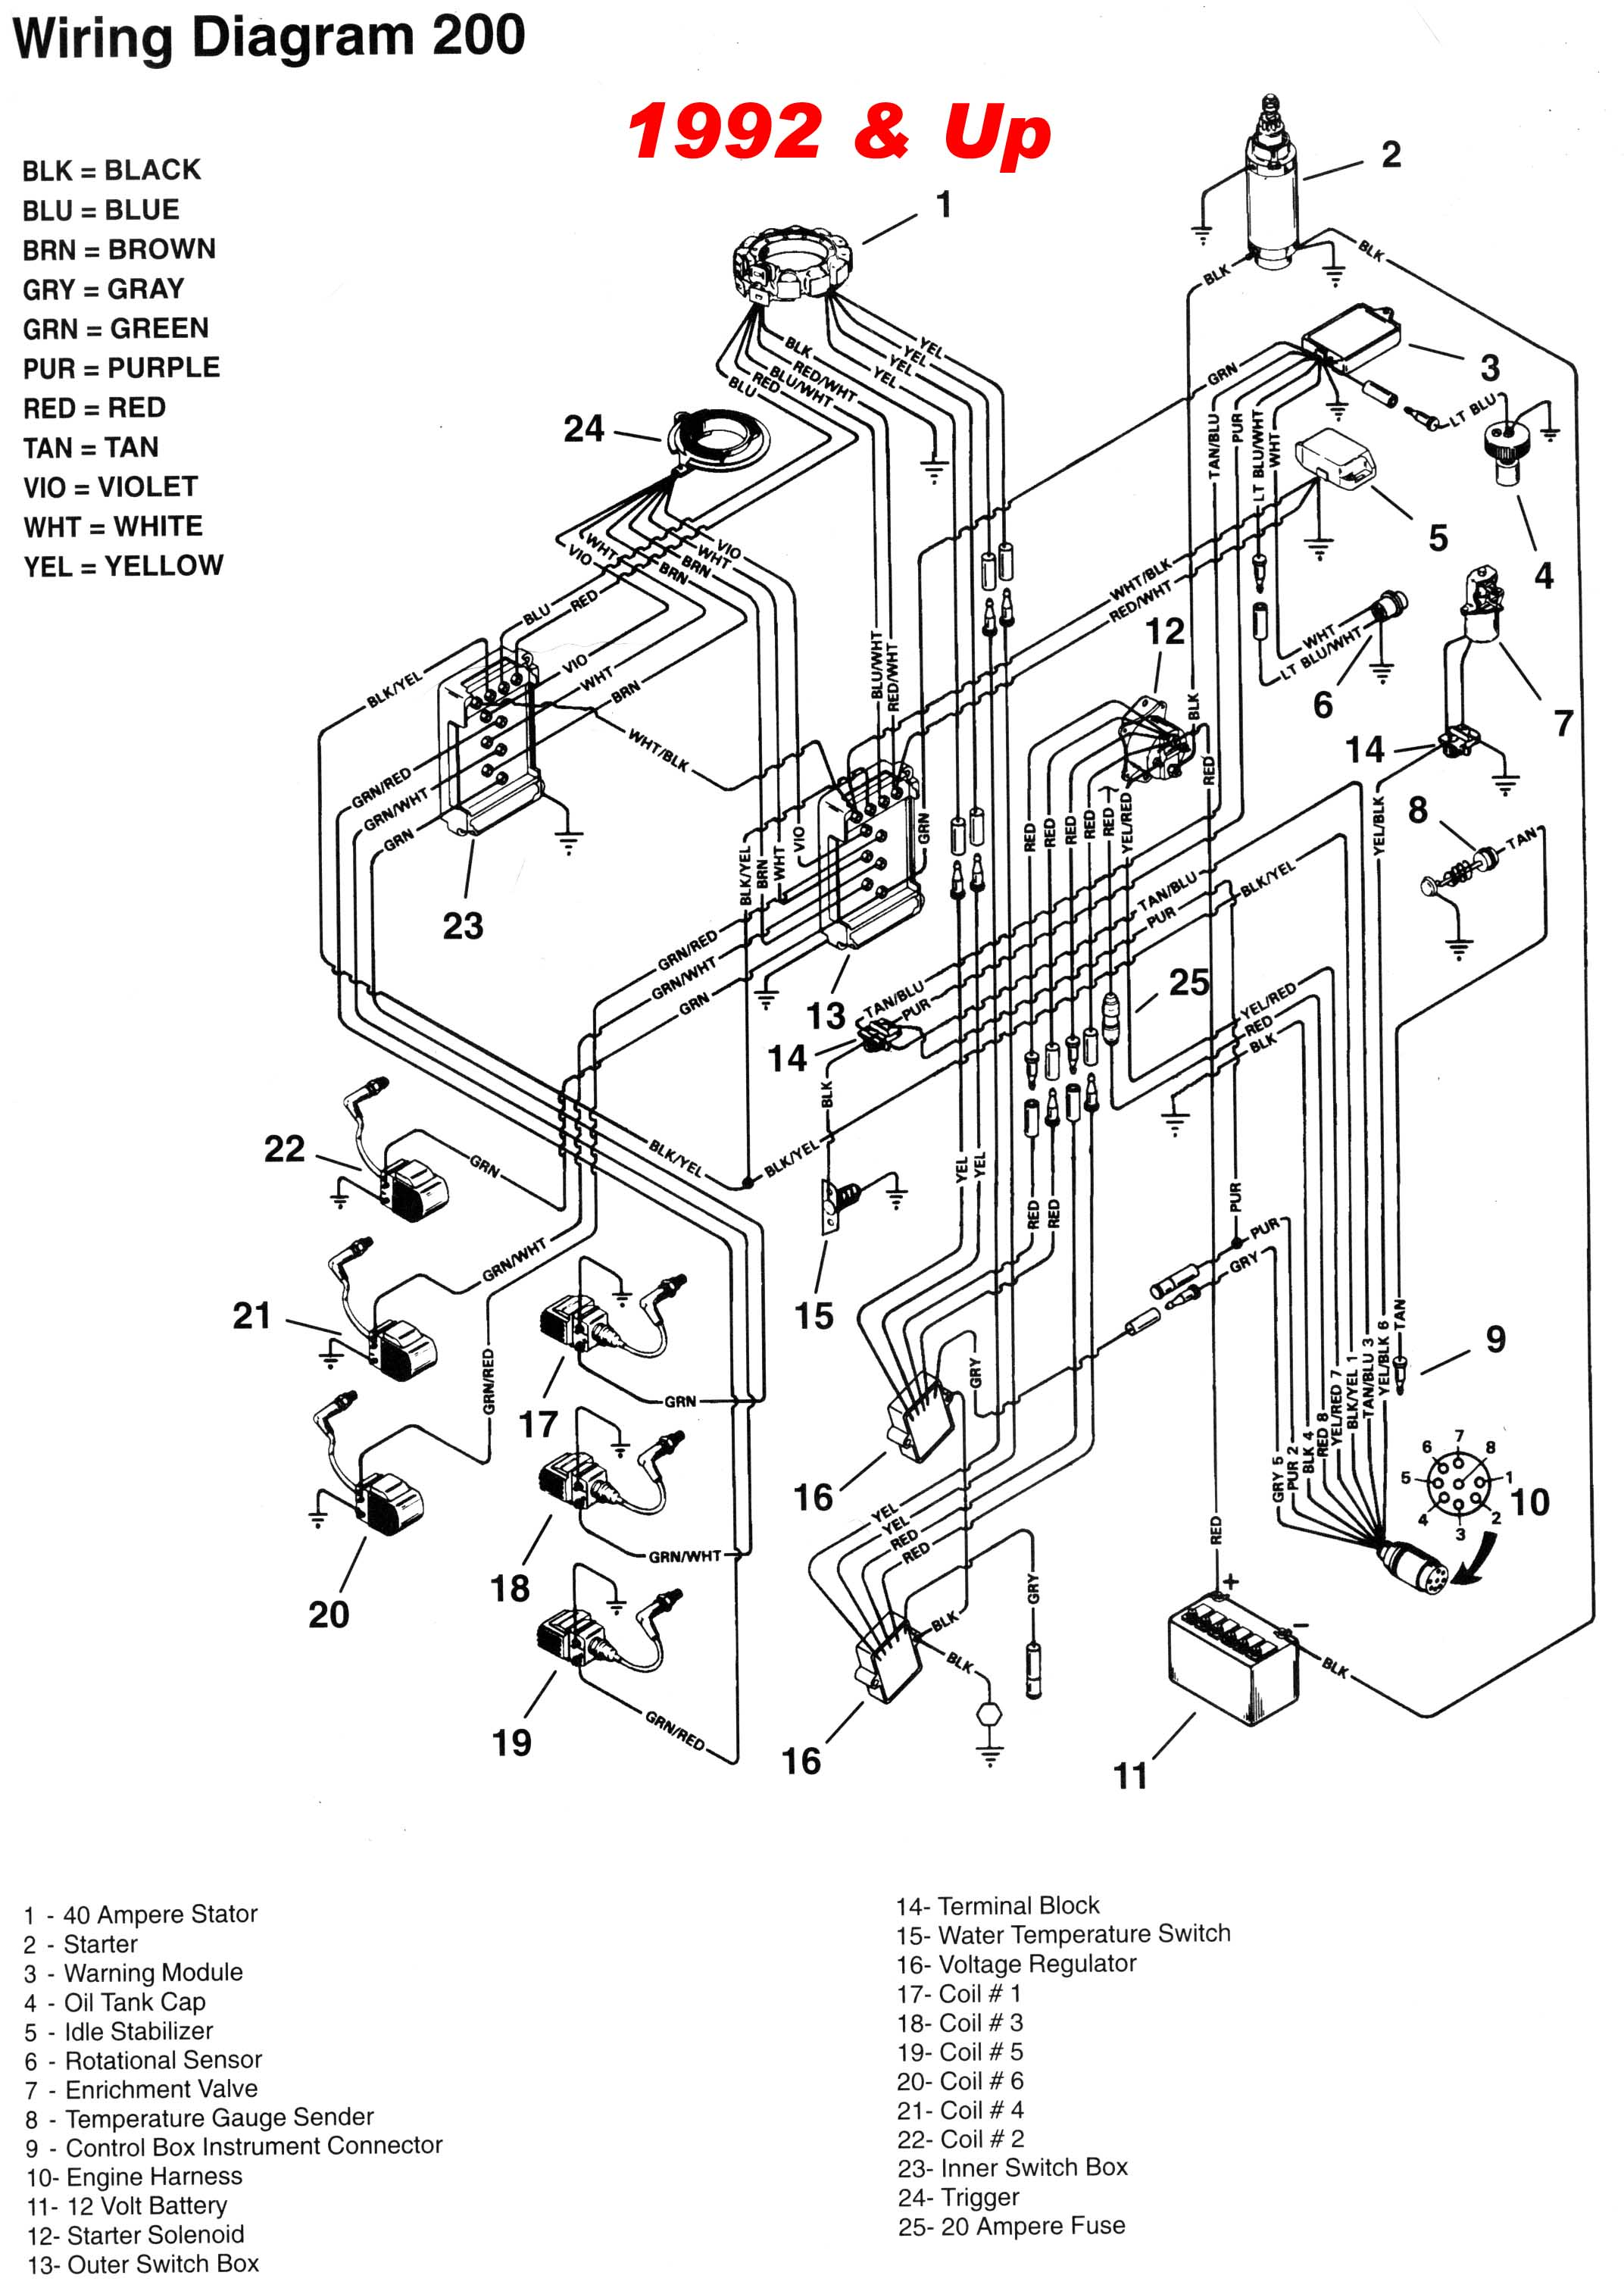 100hp Mercury Mariner Wire Diagram - Wiring Diagram Data on 60 hp evinrude outboard diagrams, mercury outboard diagrams, mercury smartcraft gauges, mercury paint, mercury ranger, mercury 400r, mercury starter diagram, 89 jeep carburetor diagrams, mercury carburetor, mercury schematics, mercury electrical diagrams, mercury outboard motors, mercury parts diagrams, mercury tilt switch, mercury motor diagrams, mercury shifter diagram, mercury key switch diagram, boat battery hookup diagrams,